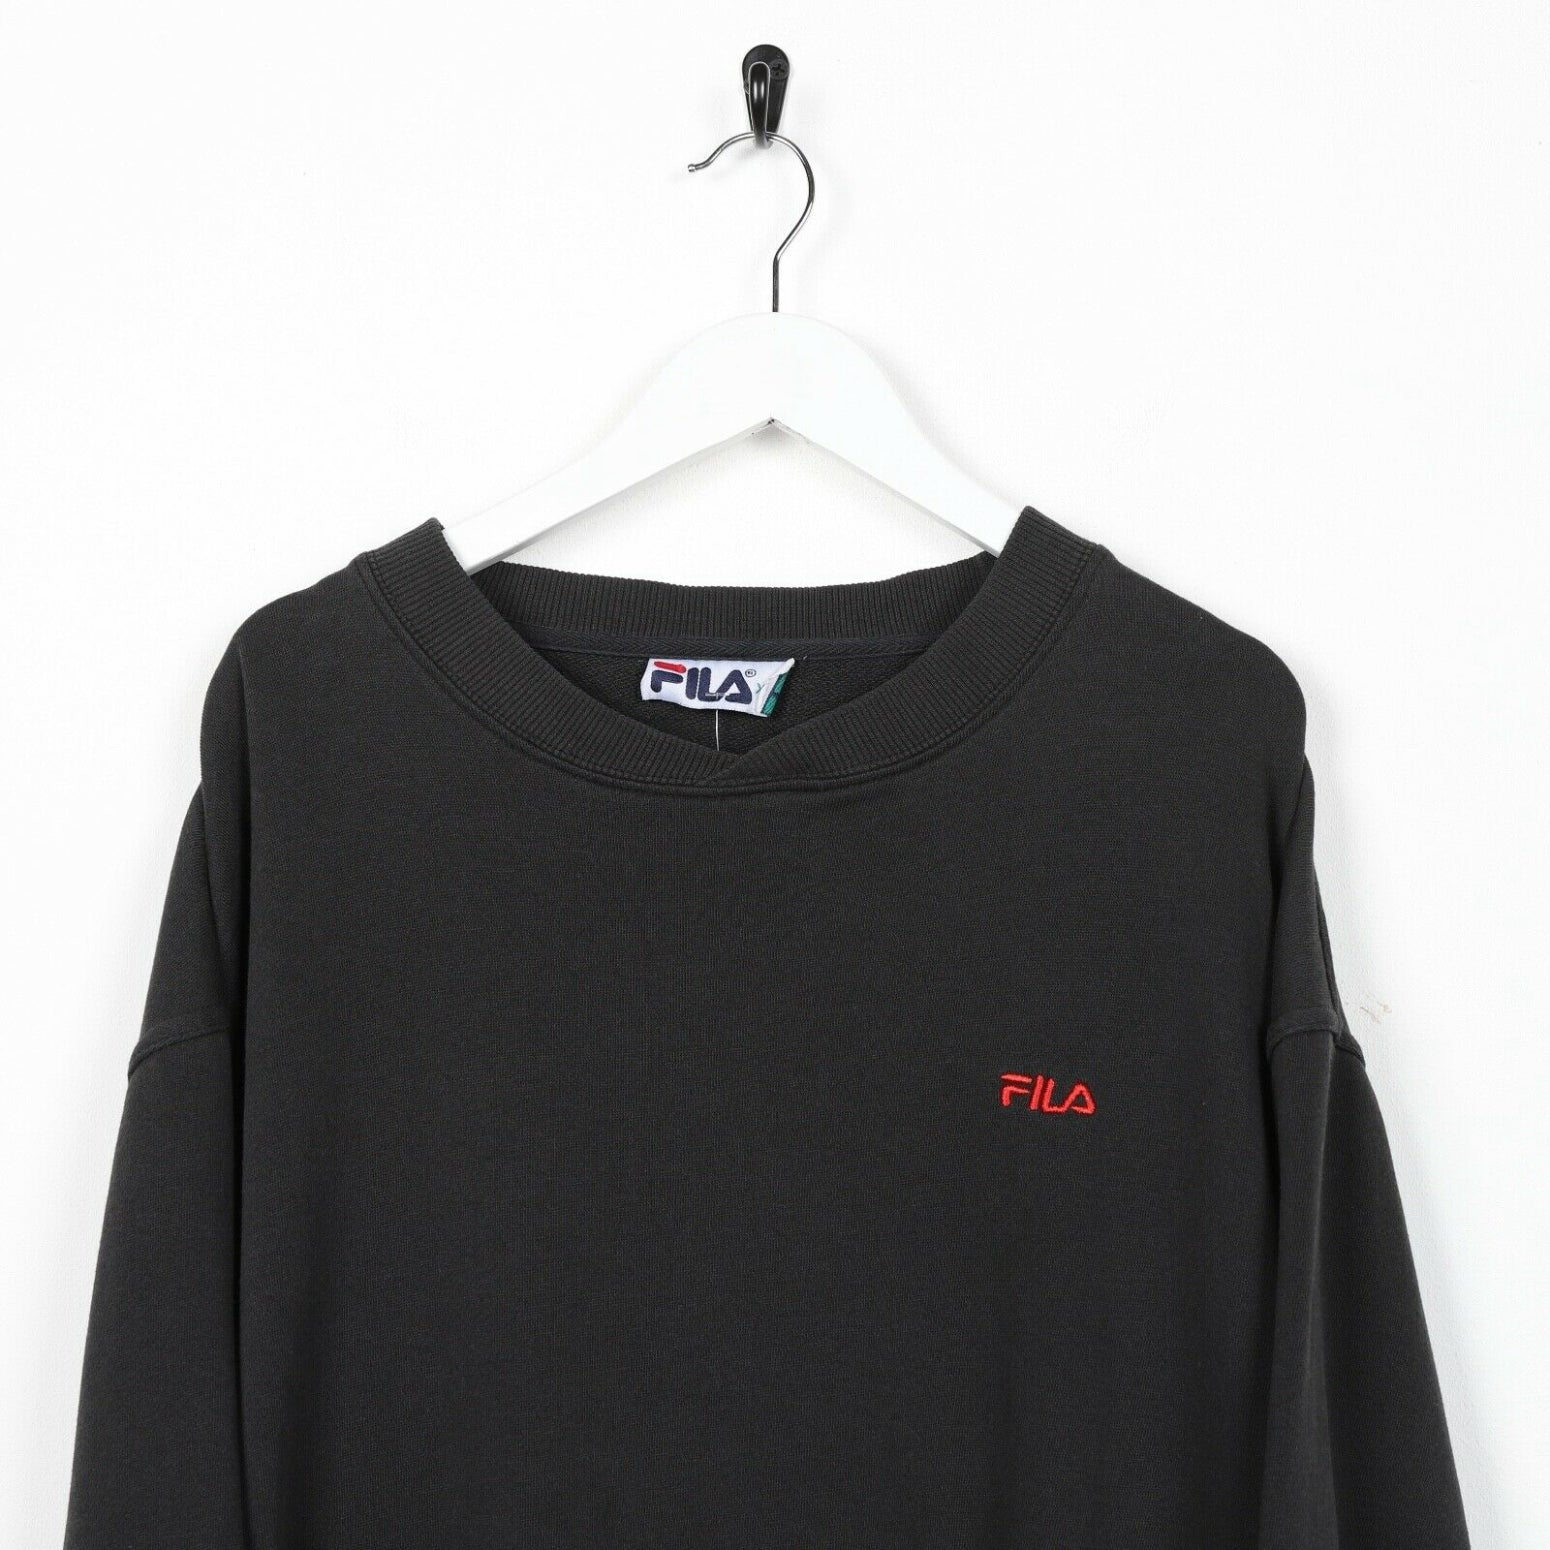 Vintage 90s FILA Small Logo Sweatshirt Jumper Black | 2XL